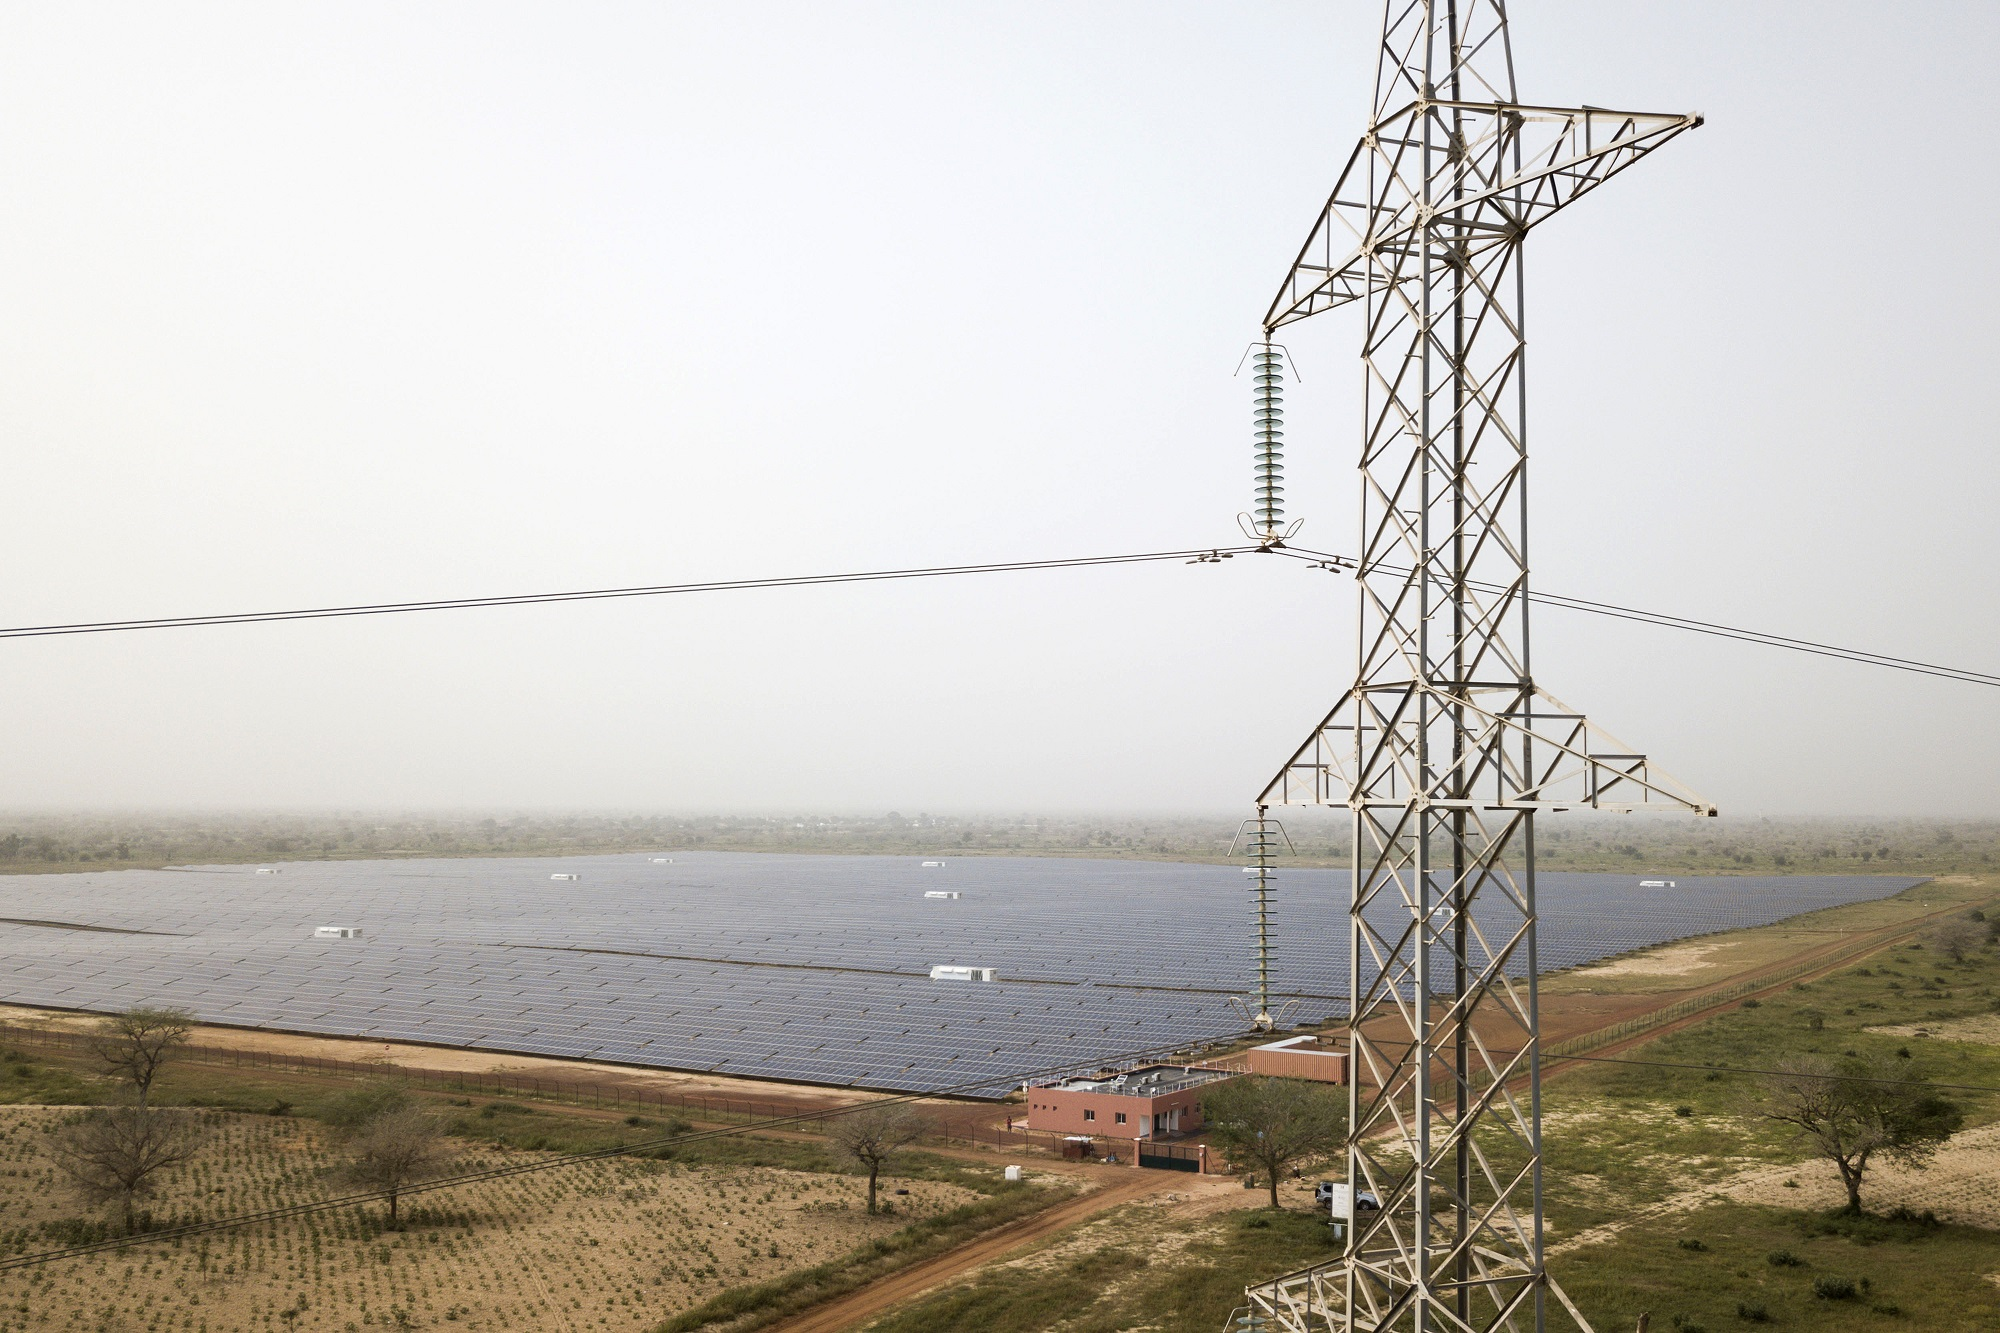 PRICE AND NEED FOR RELIABLE ELECTRICITY POWER ARE SPURRING SOLAR SALES TO AFRICAN BUSINESSES